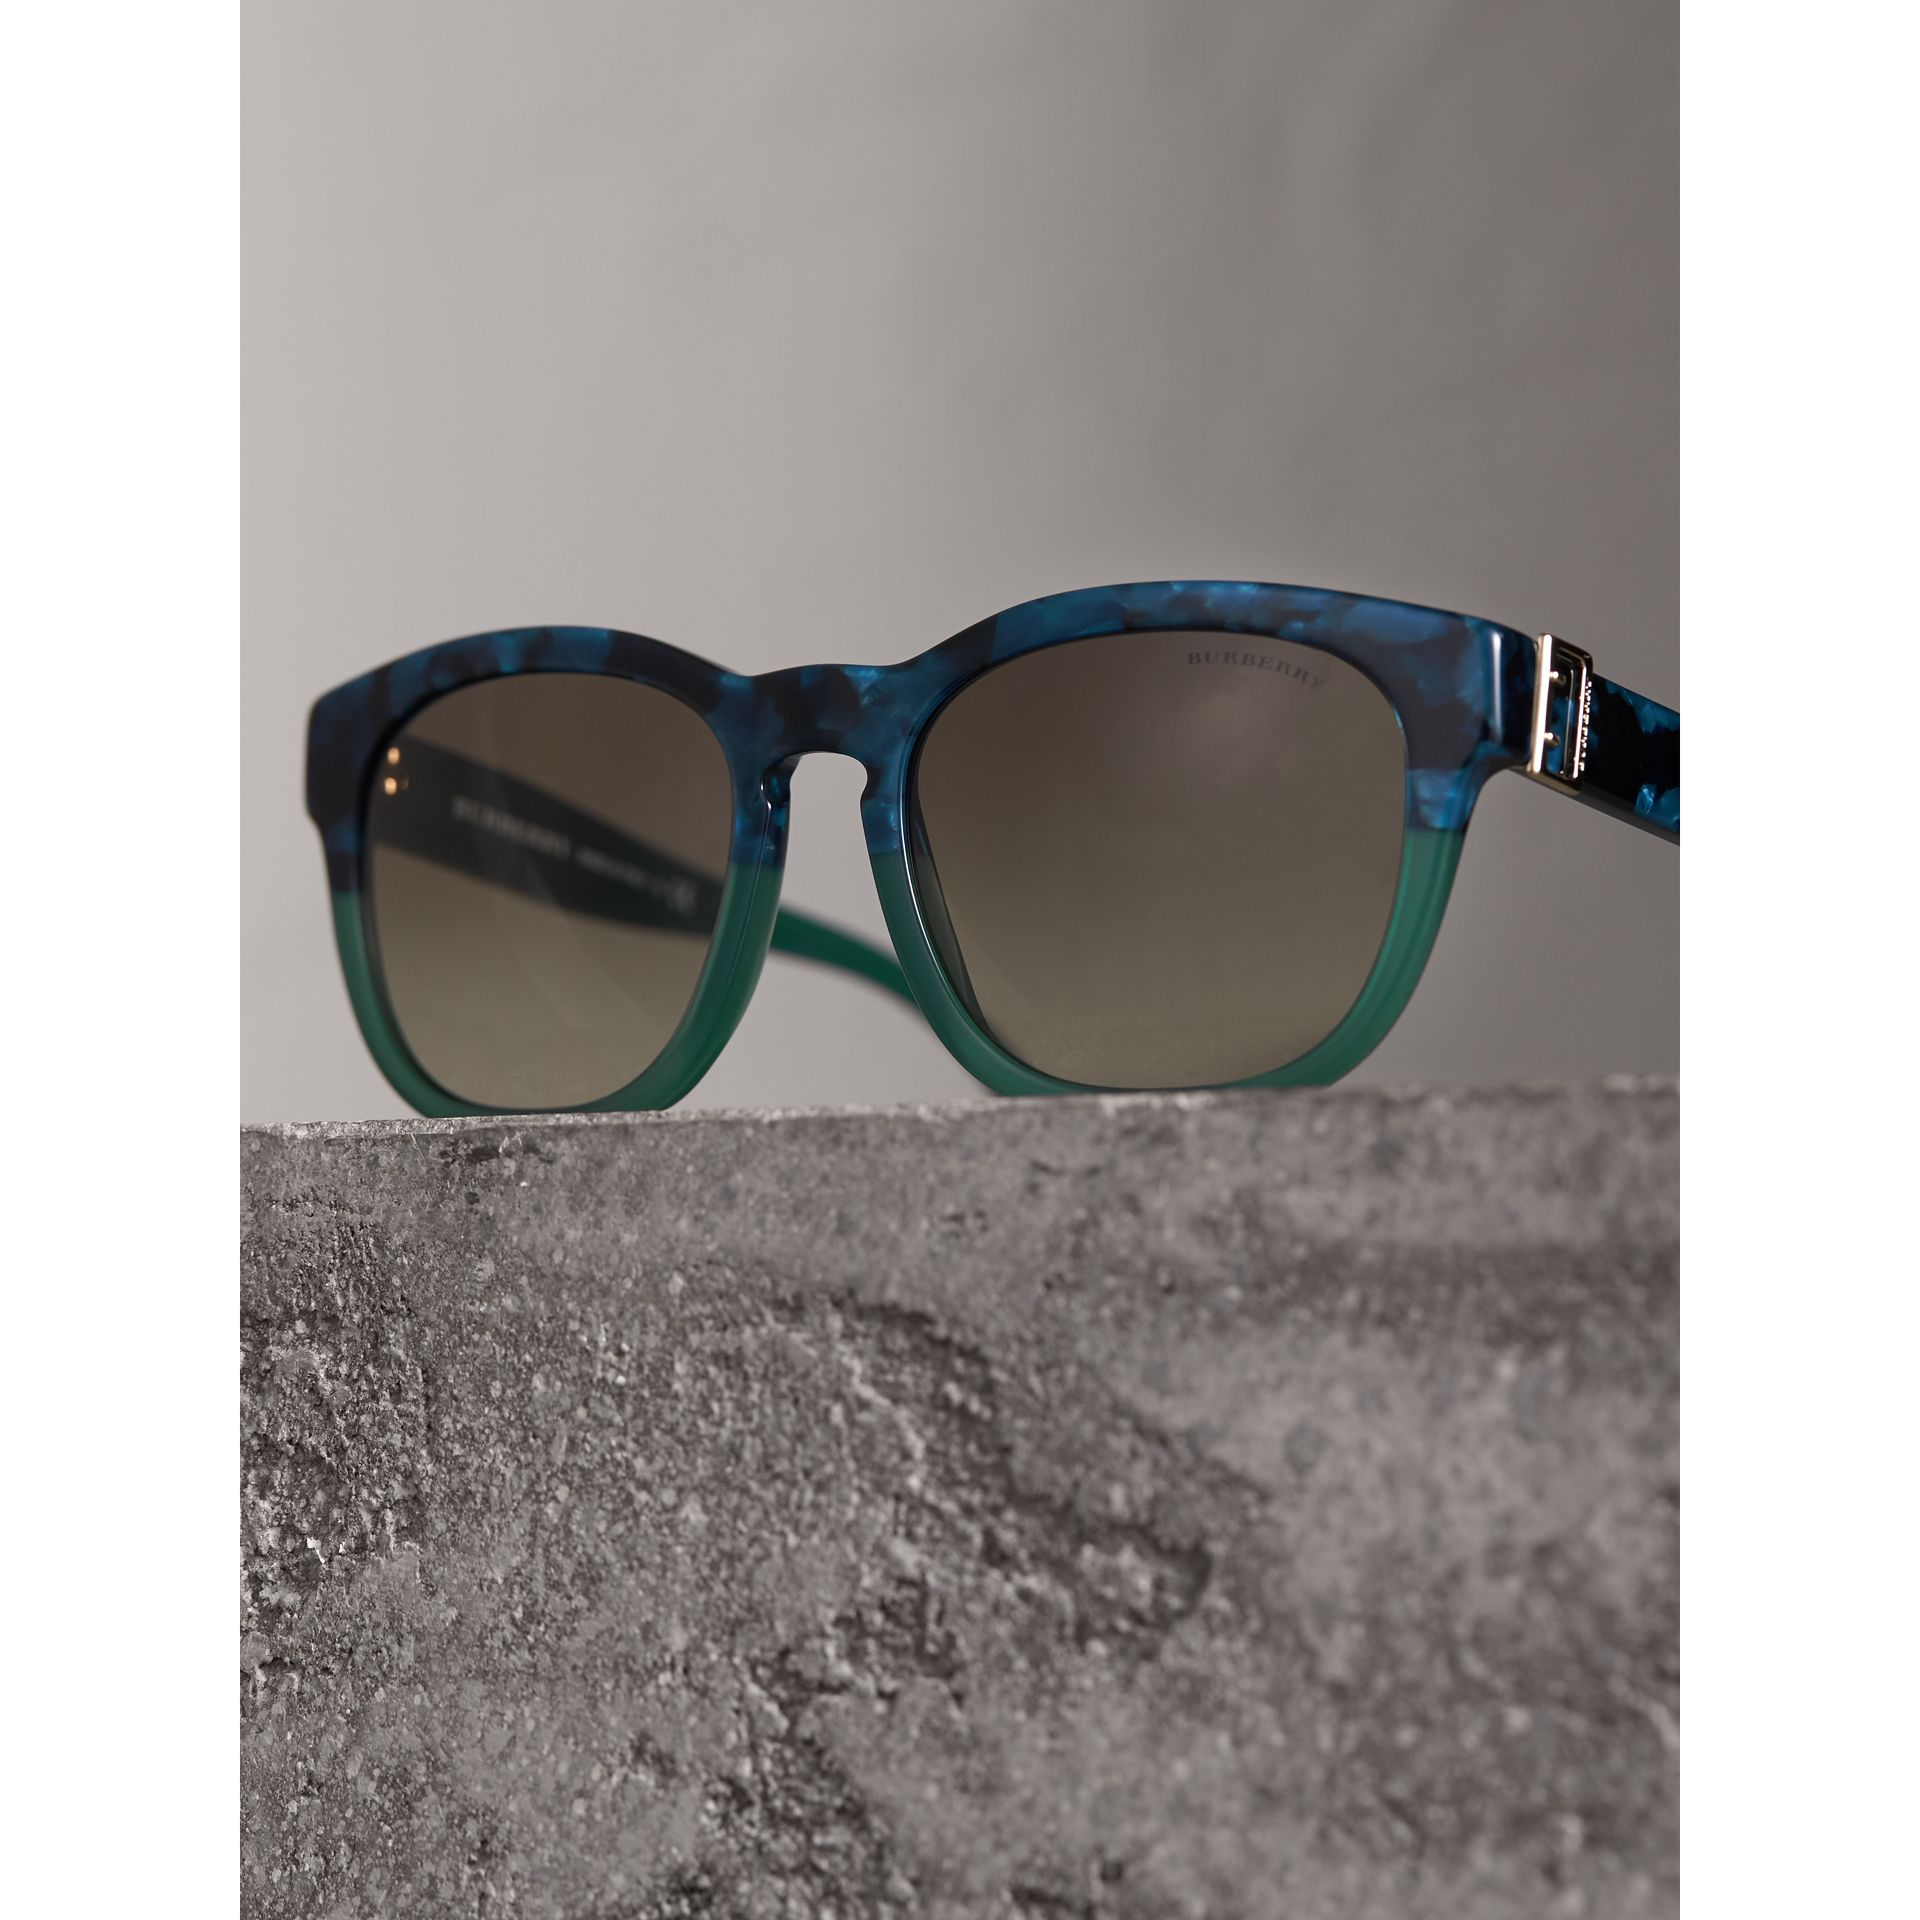 Buckle Detail Square Frame Sunglasses in Blue - Women | Burberry Singapore - gallery image 2